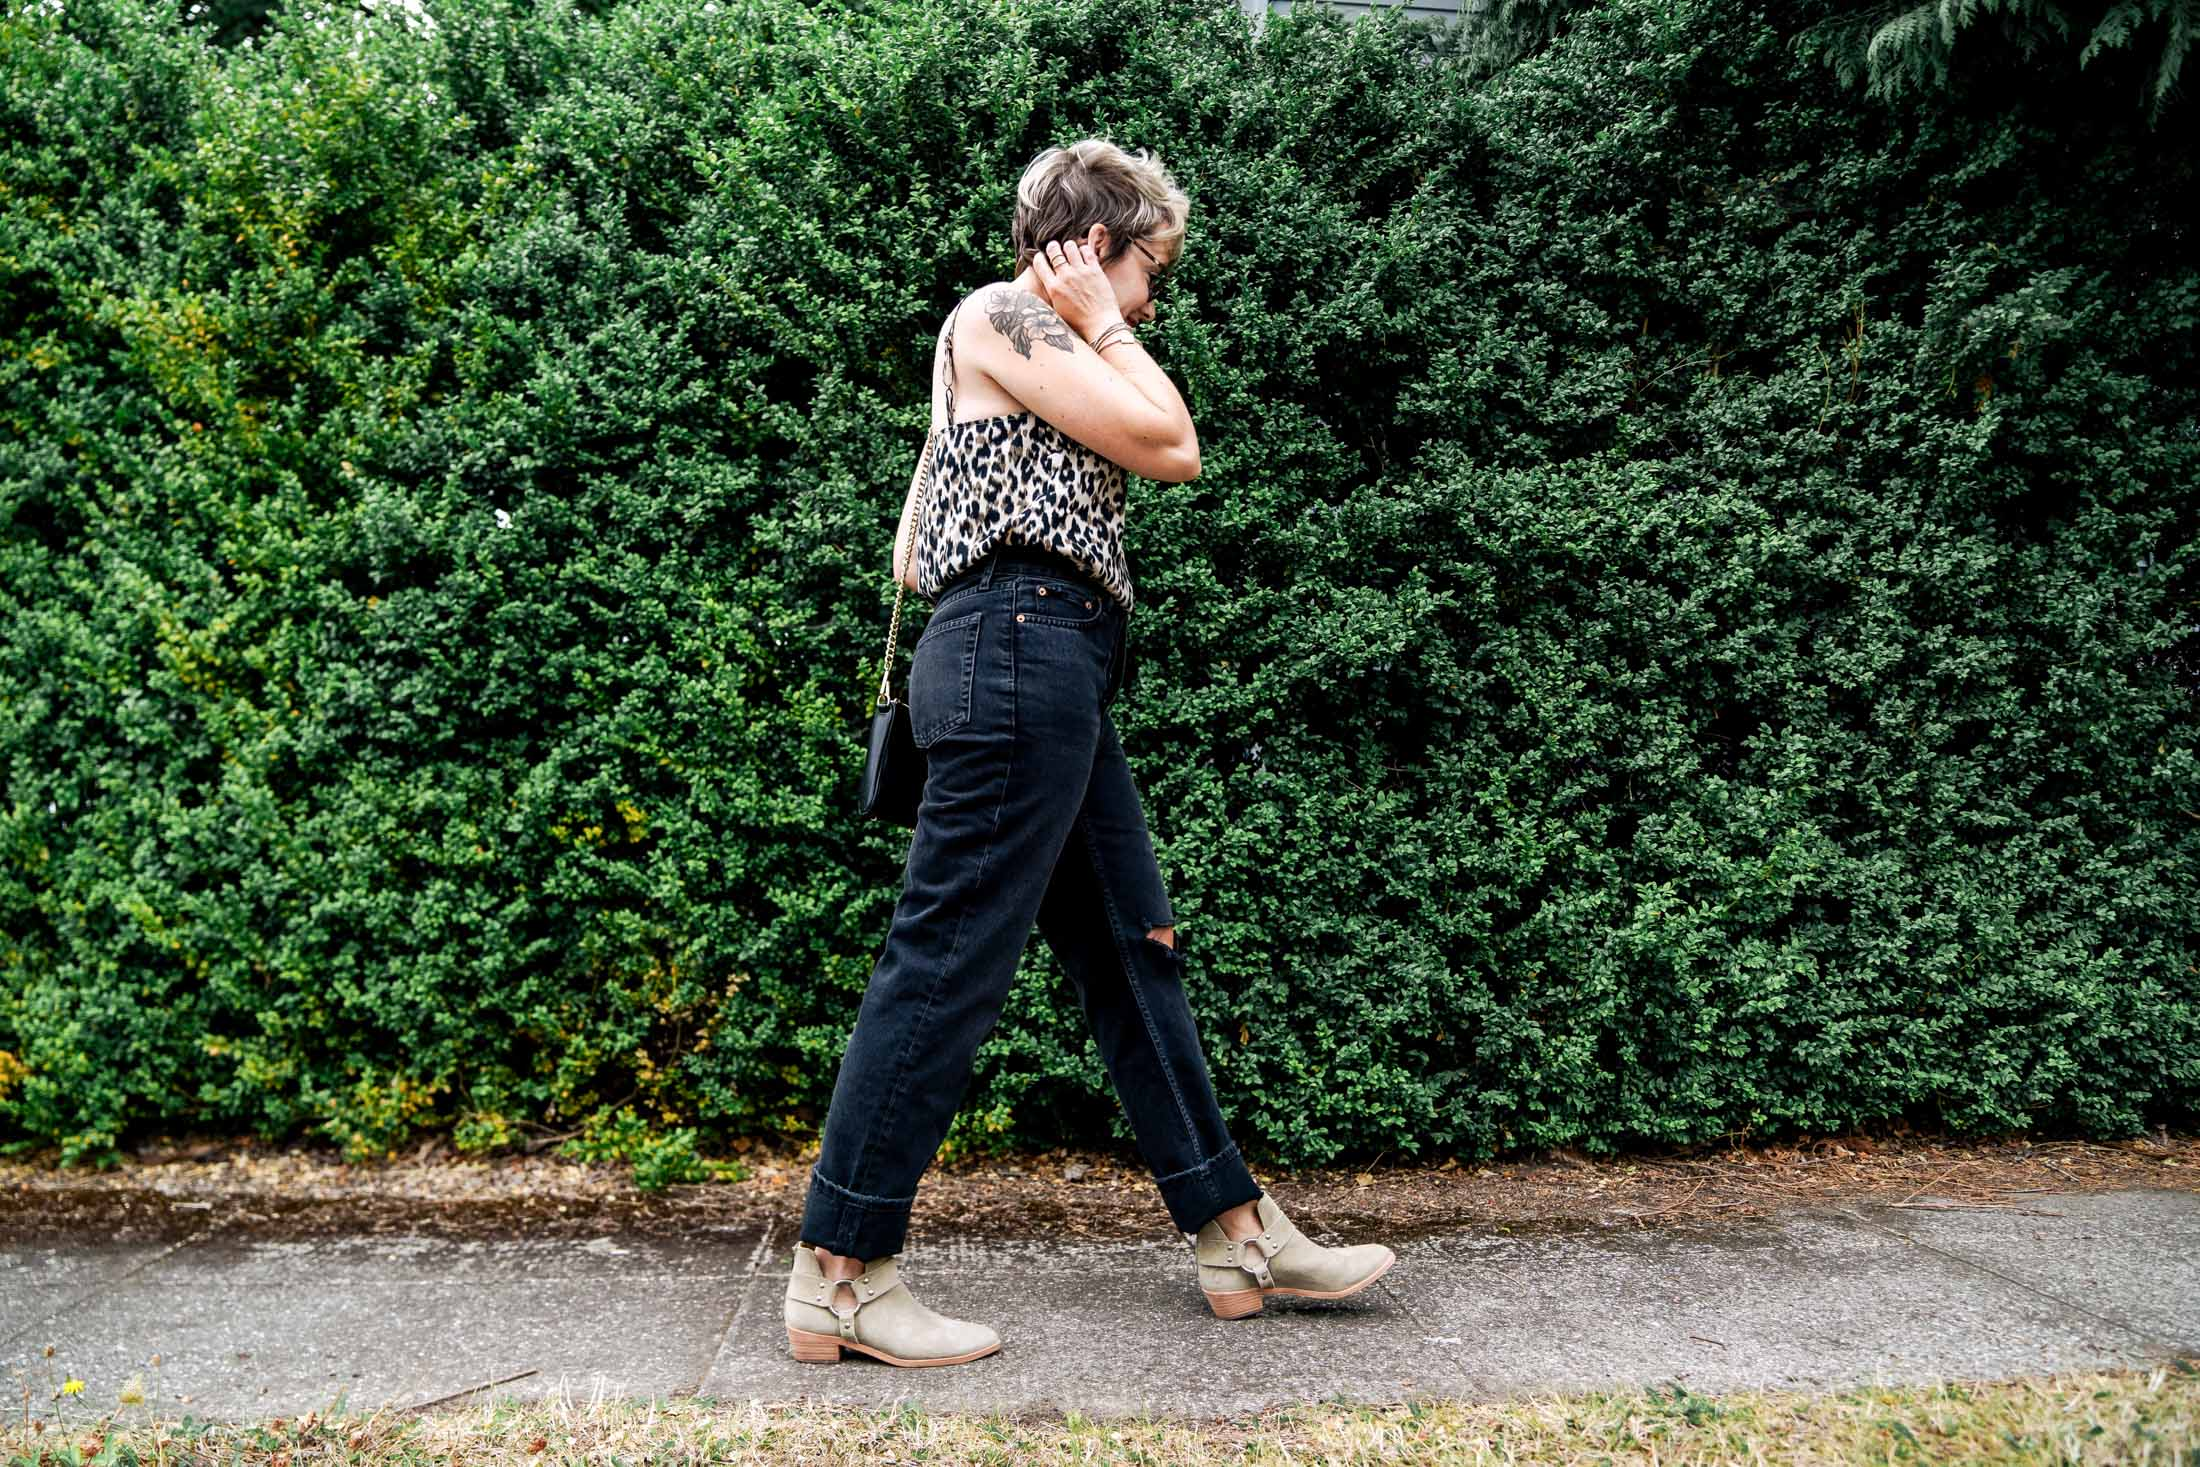 Not all shoes vibe w/ straight-leg jeans, but here are 10 pairs that do...These styles tend to be most flattering & least fussy, especially for warm weather.